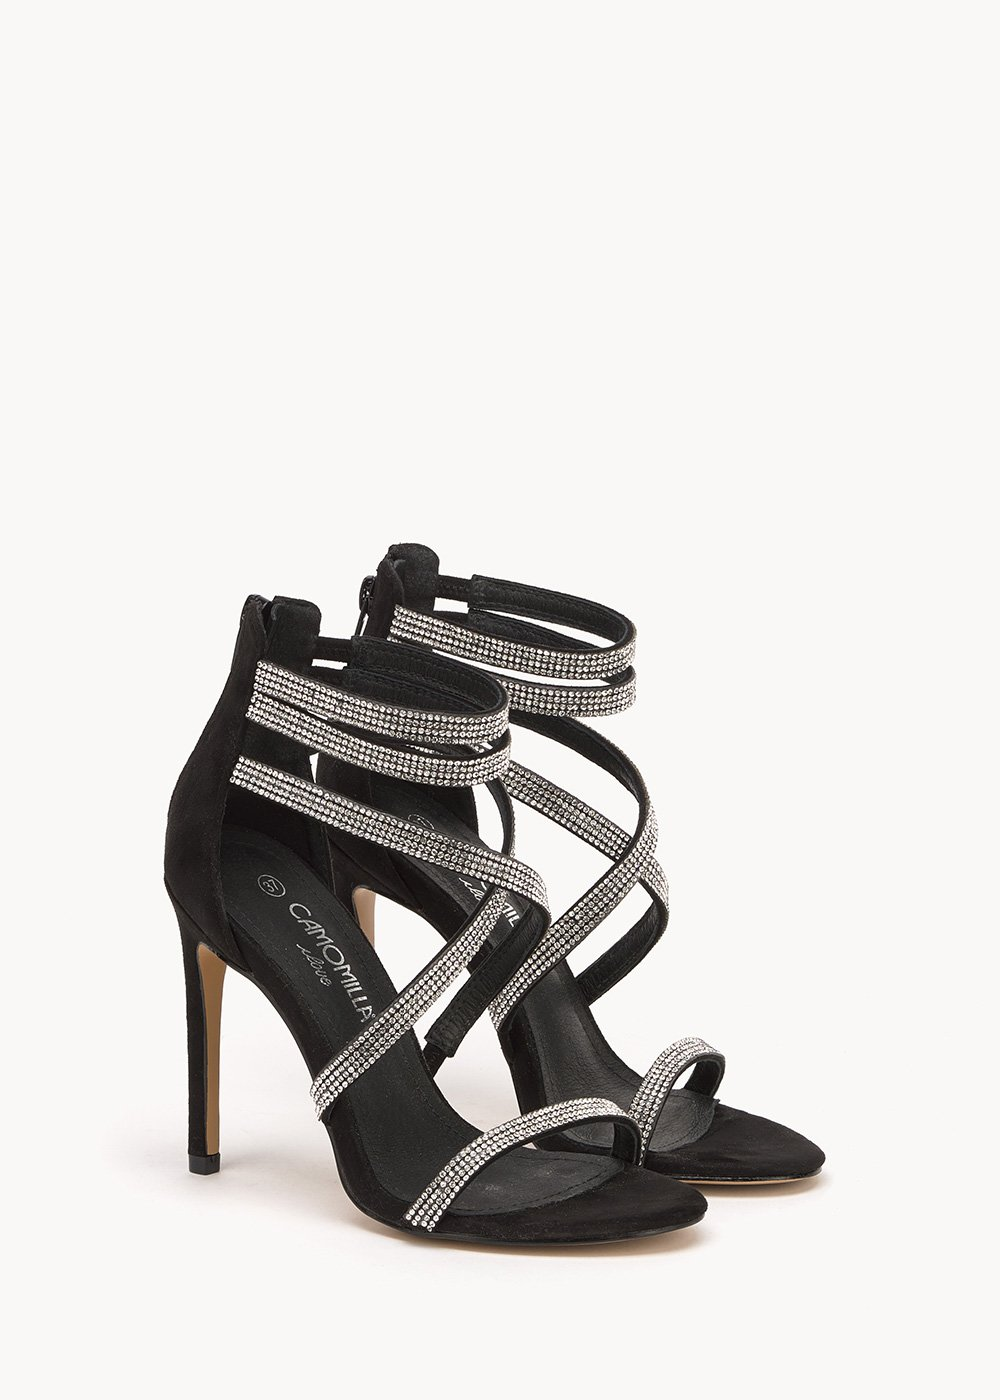 Shyla sandals with rhinestone details - Black - Woman